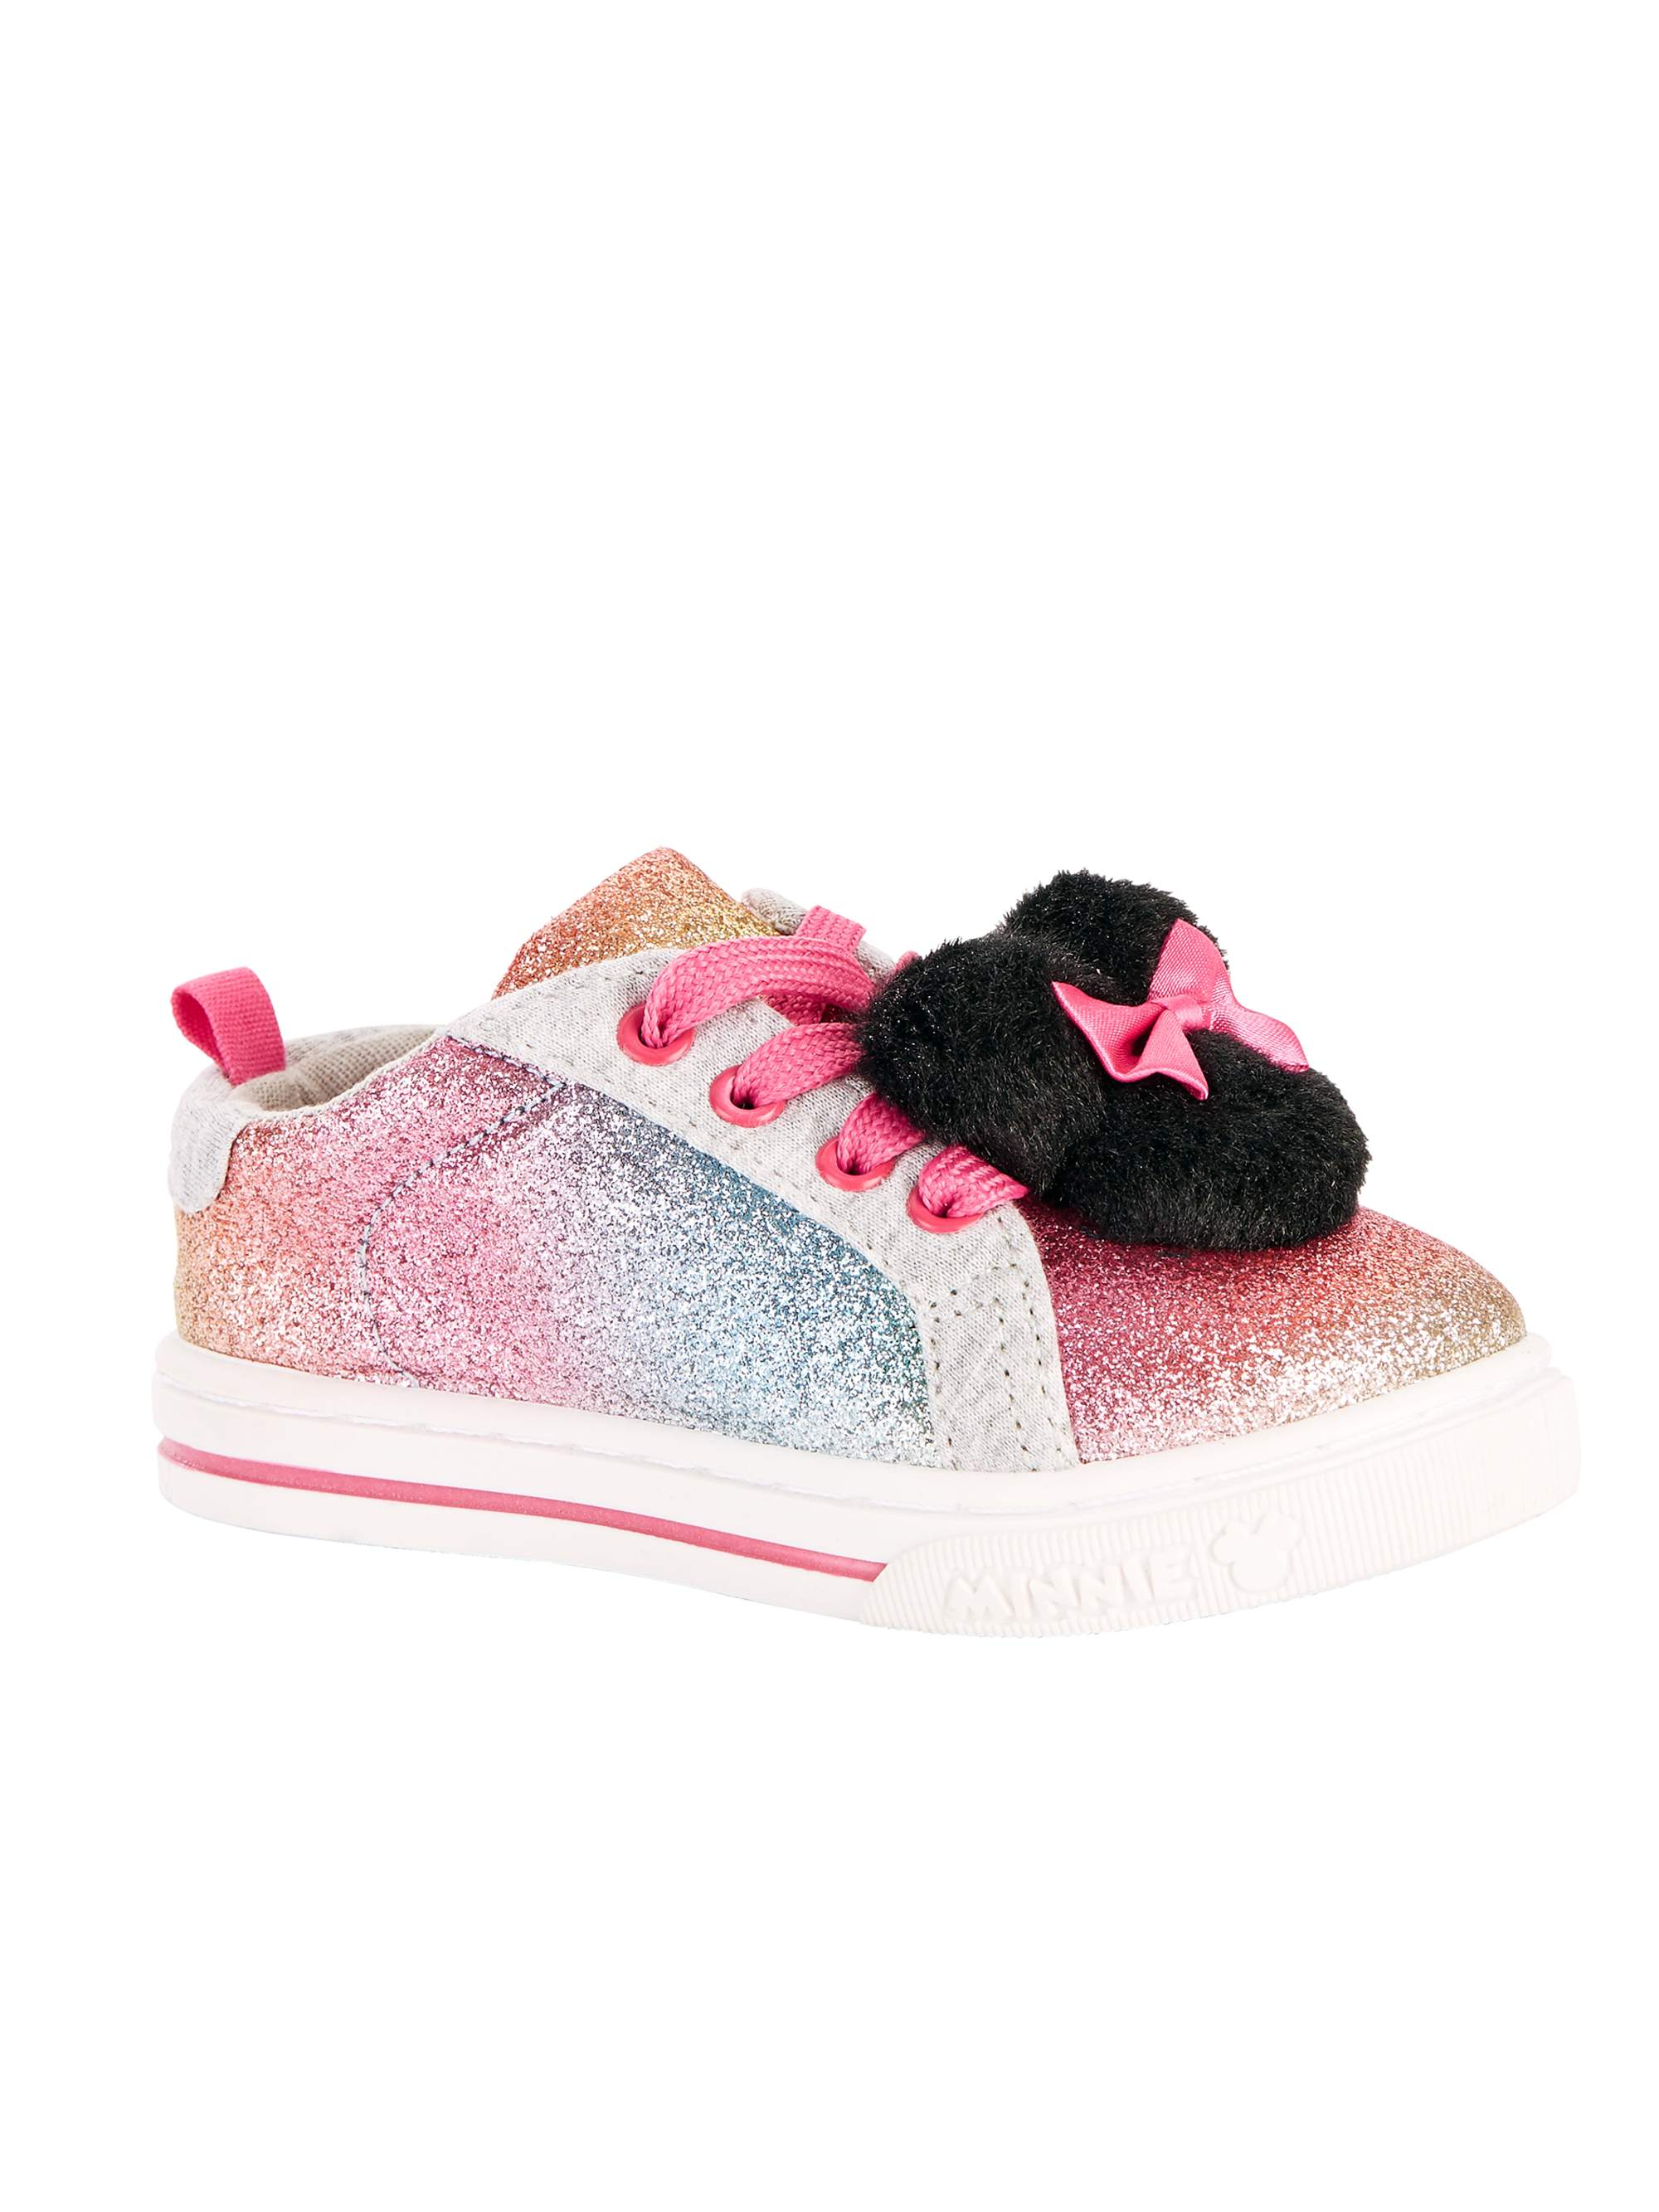 size Toddler Girls/' Minnie Mouse Light-Up Sneaker Shoes 6 7 8 9 10 11 12